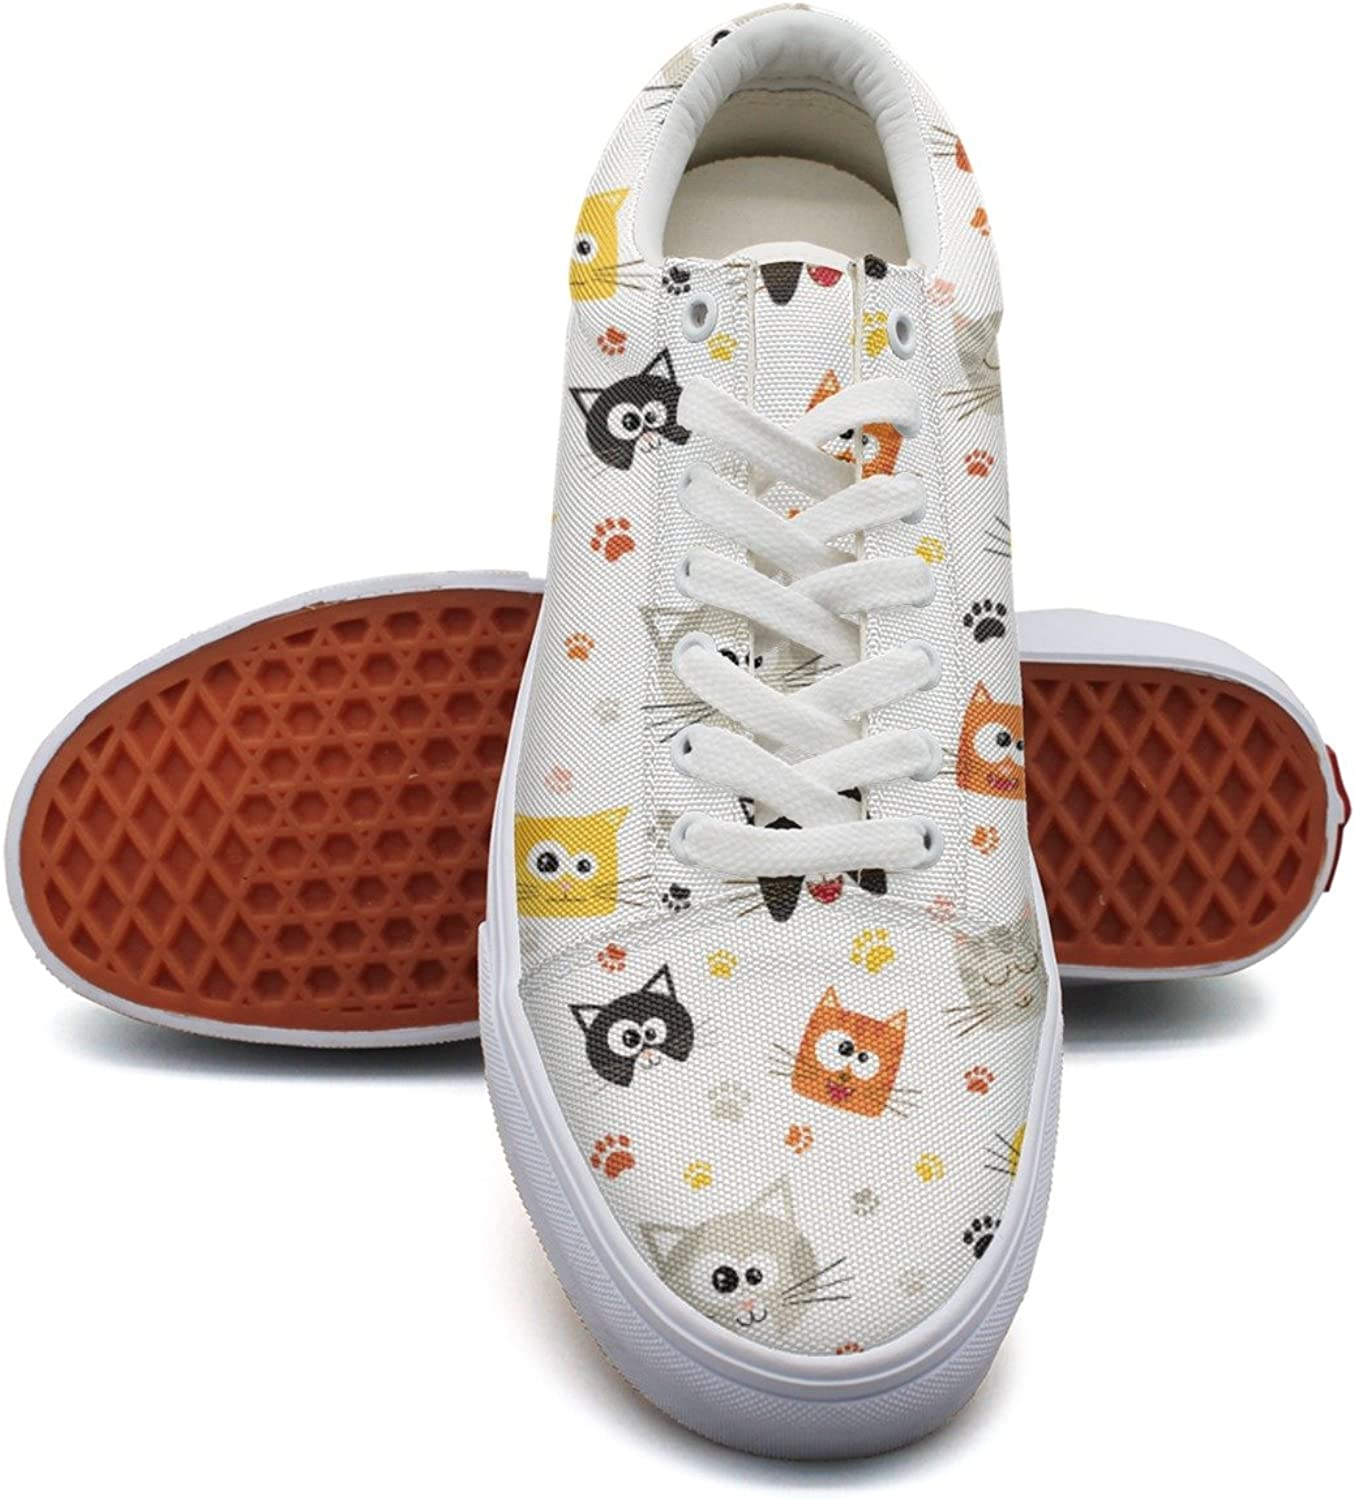 Cute Cartoon Cat Faces and Footprint Womens Denim Canvas Low Top Hip Hop Sneakers shoes for Women's